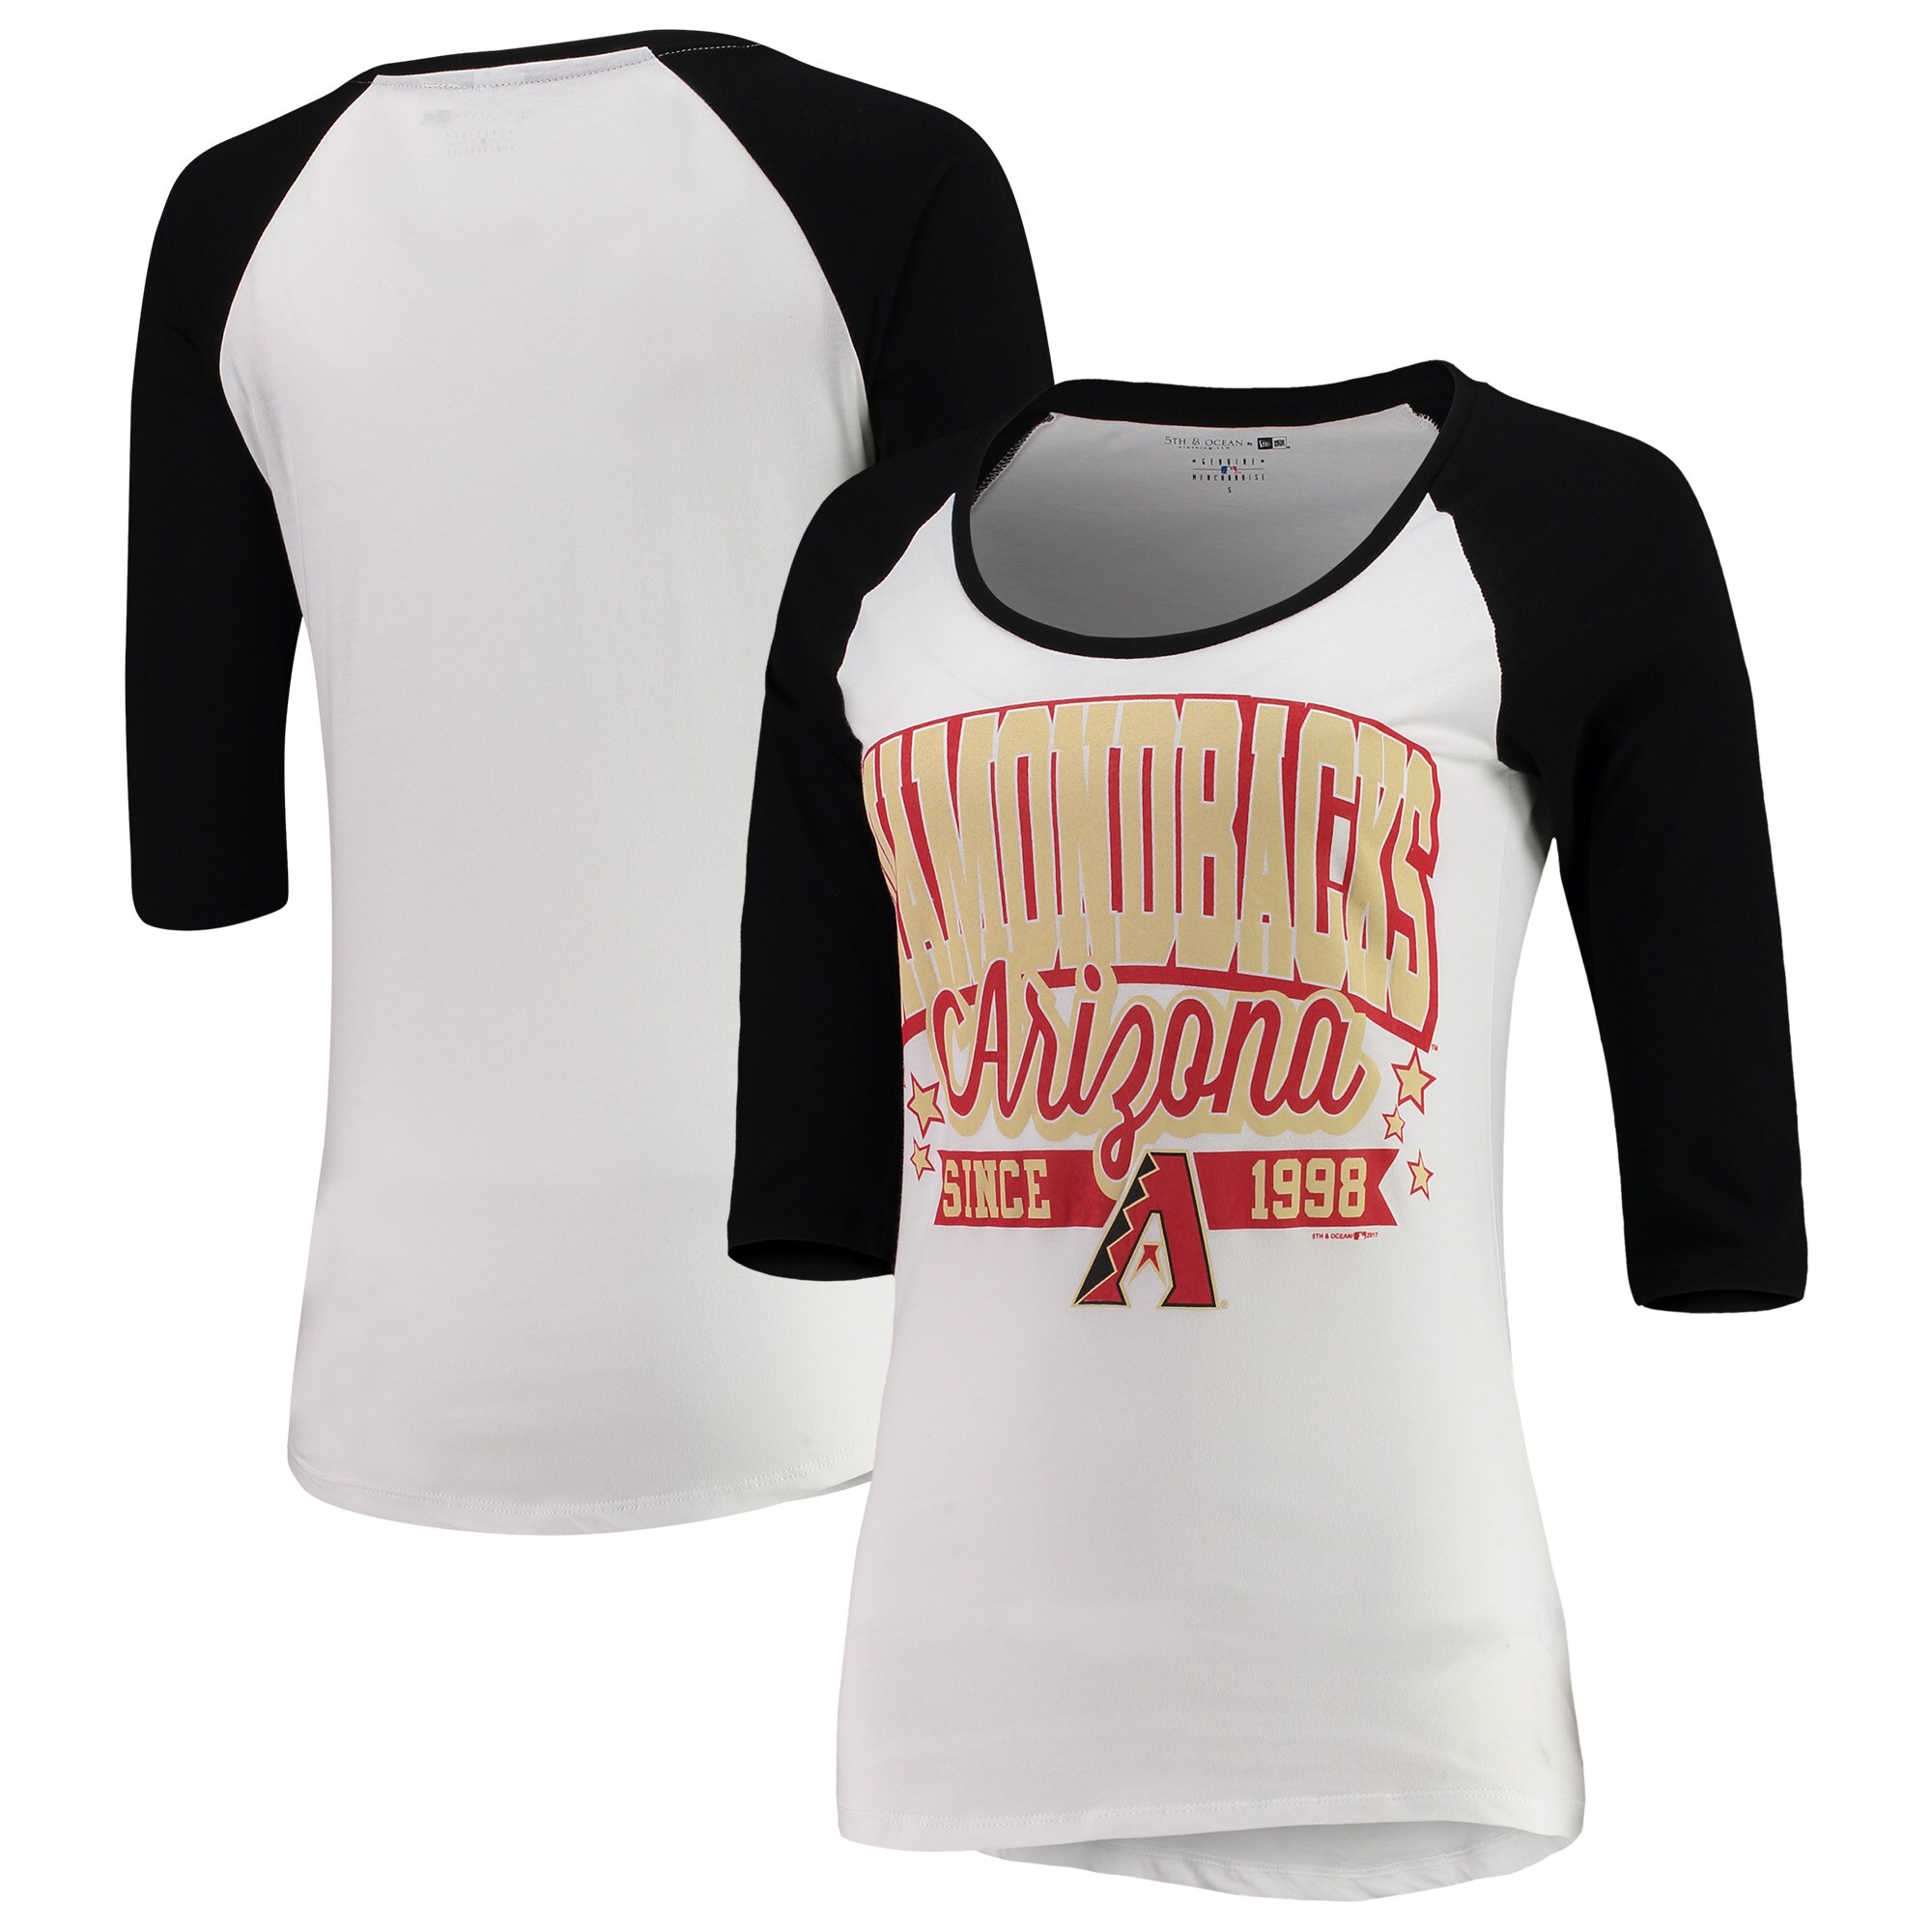 Arizona Diamondbacks 5th & Ocean by New Era Women's Team Banner 3/4-Sleeve Raglan T-Shirt - White/Black